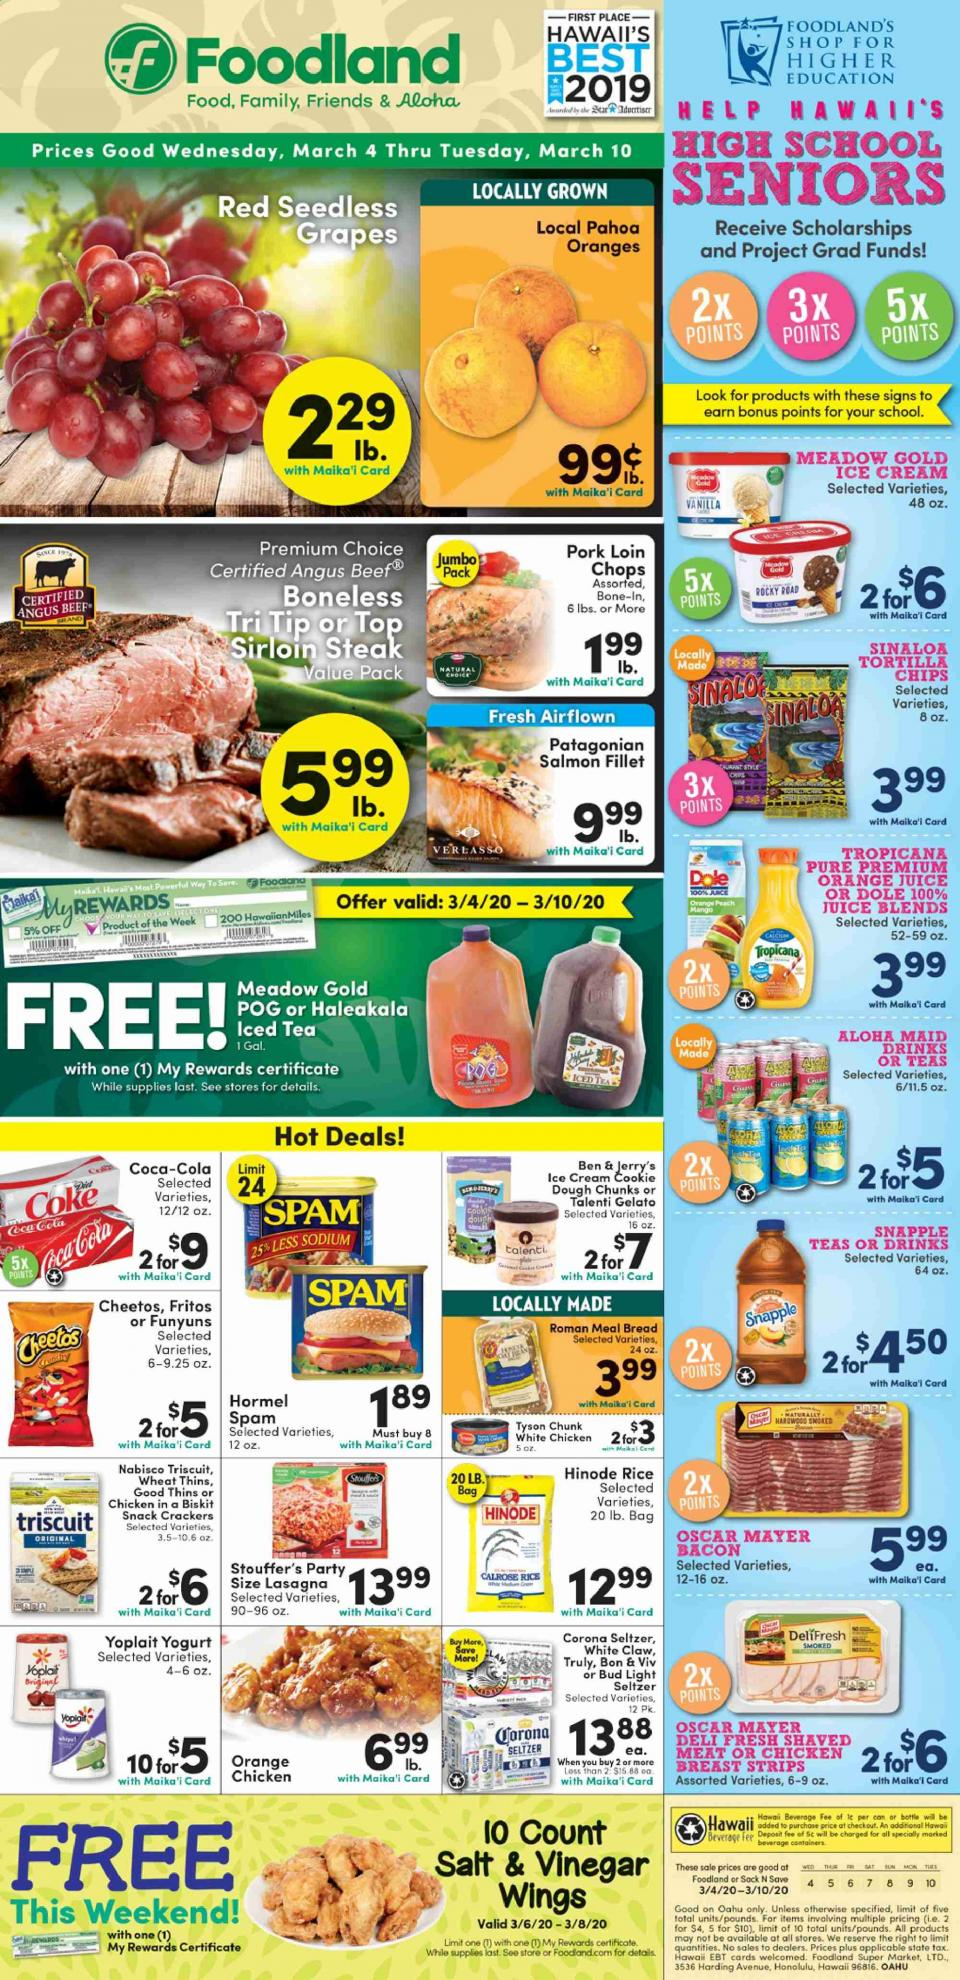 Foodland March Weekly Ad valid from March 4 – 10, 2020.